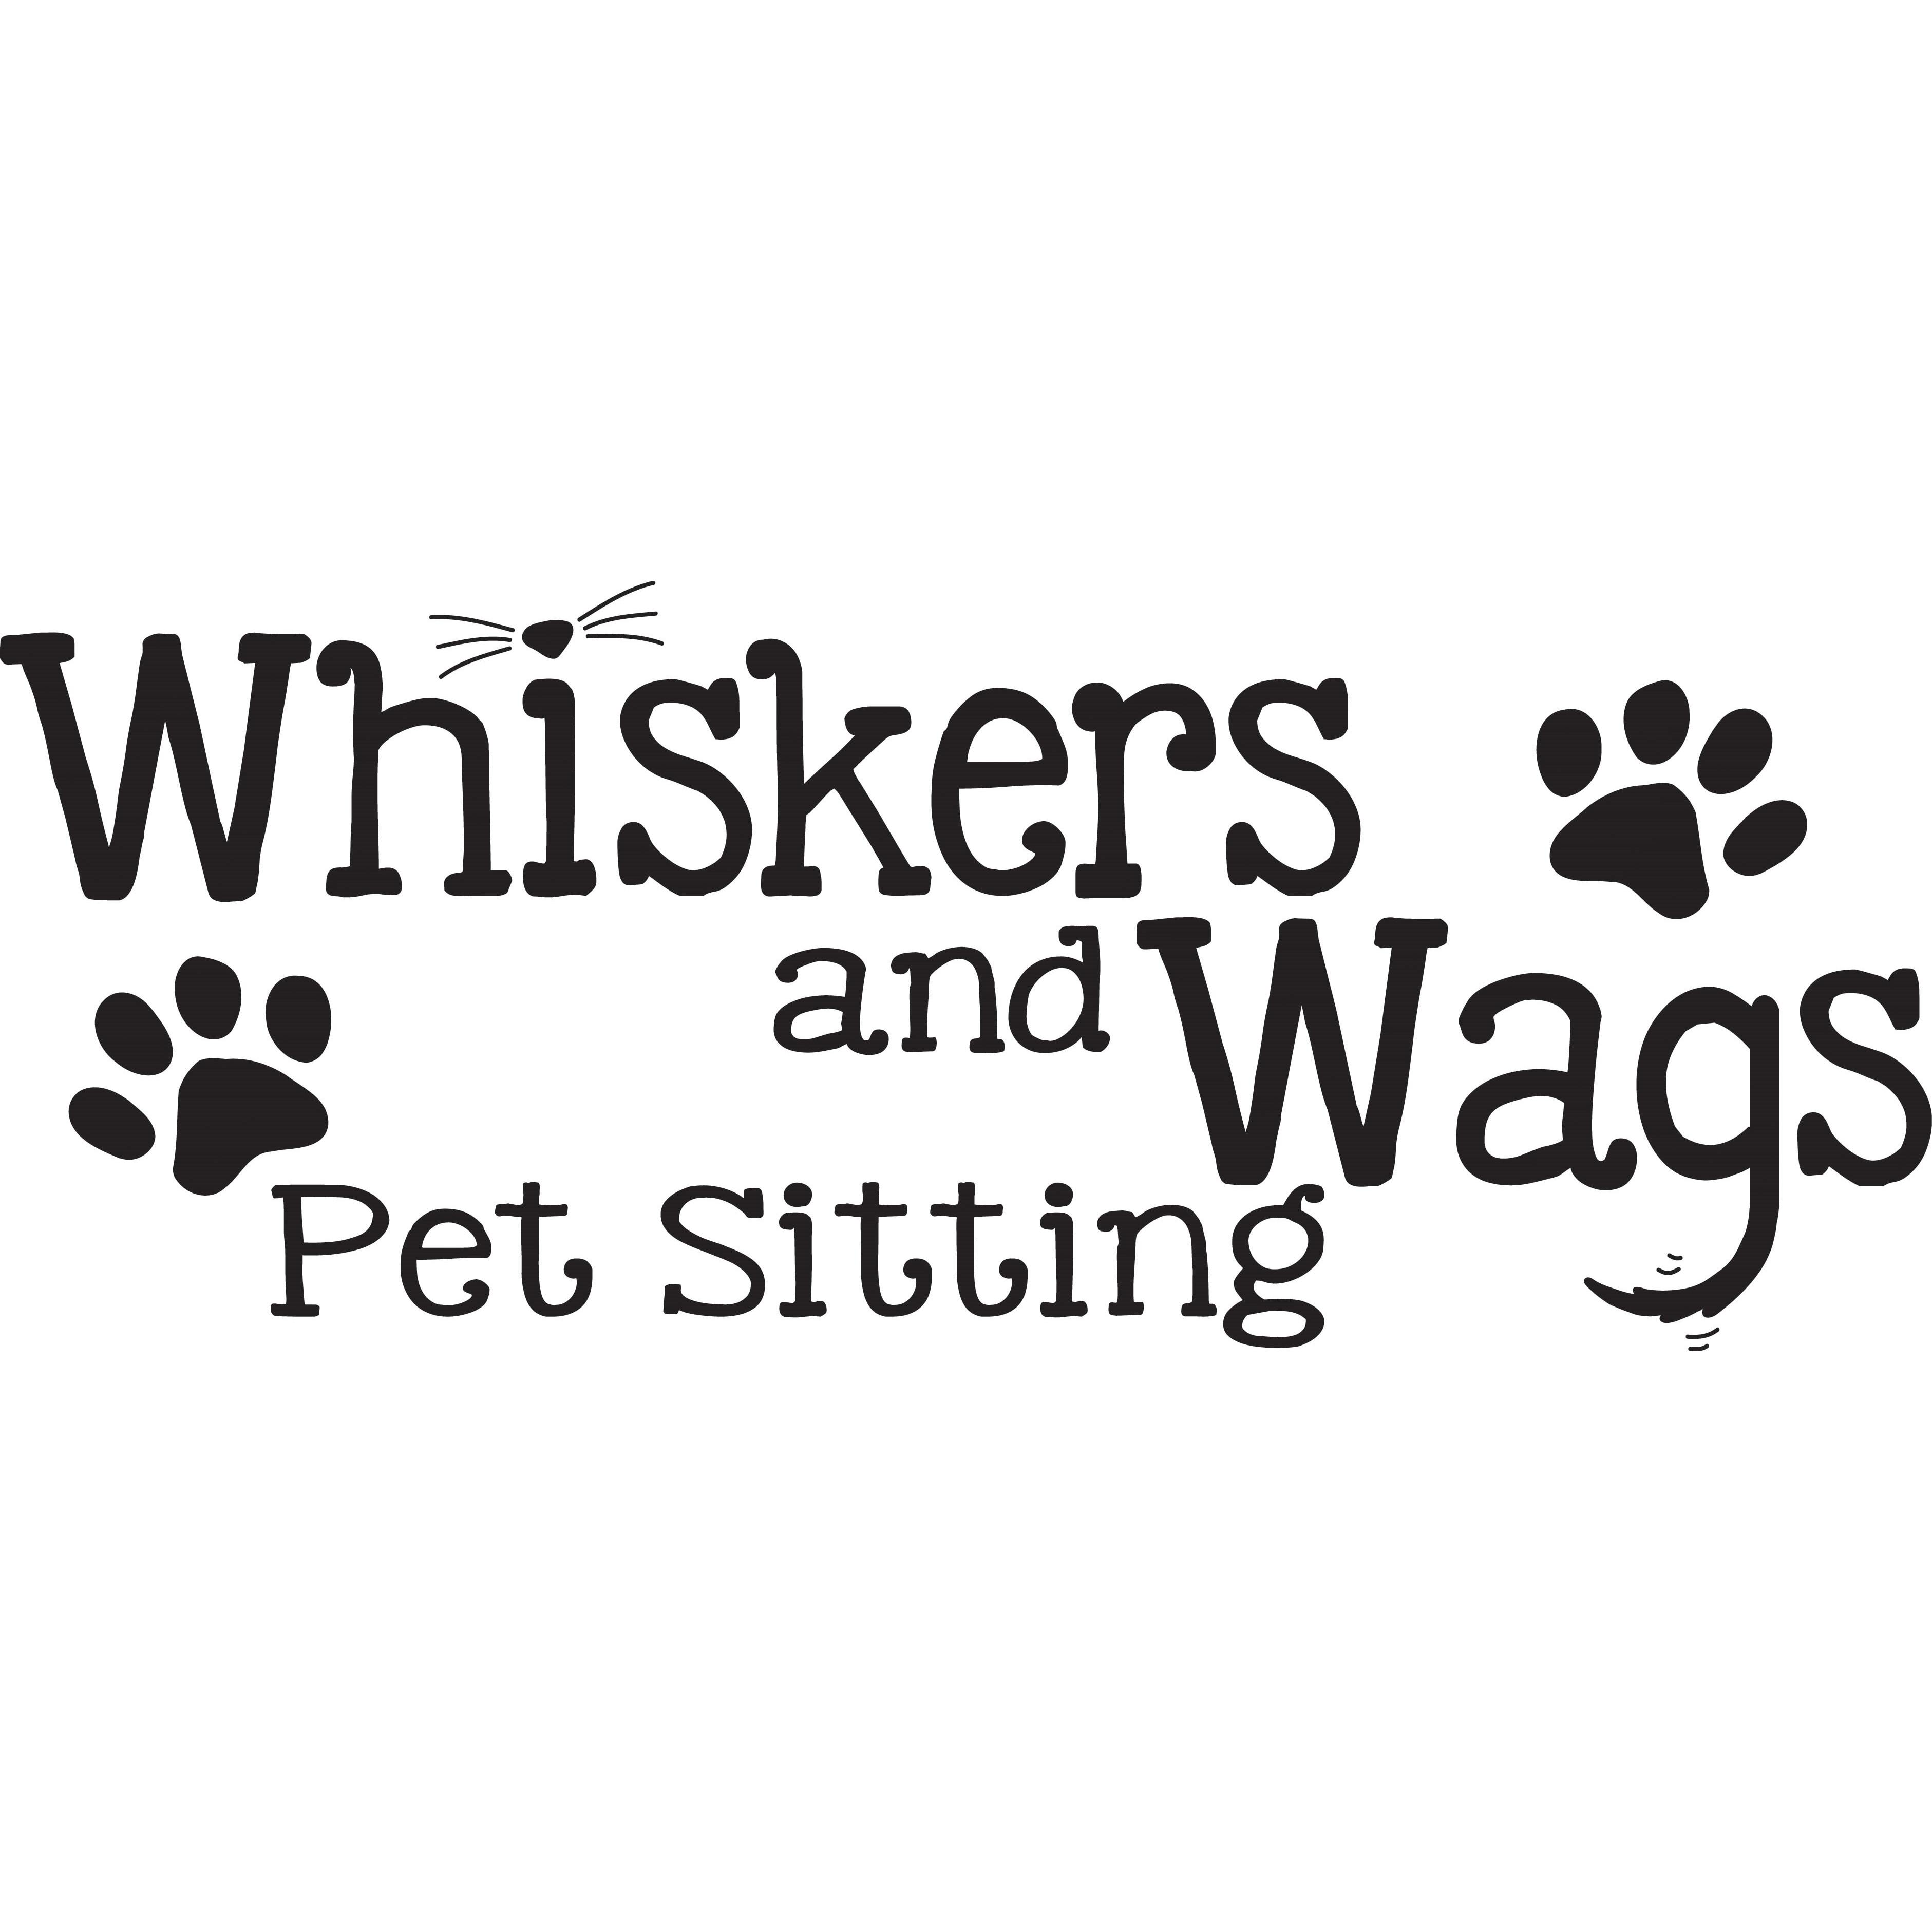 Whiskers and Wags Pet Sitting